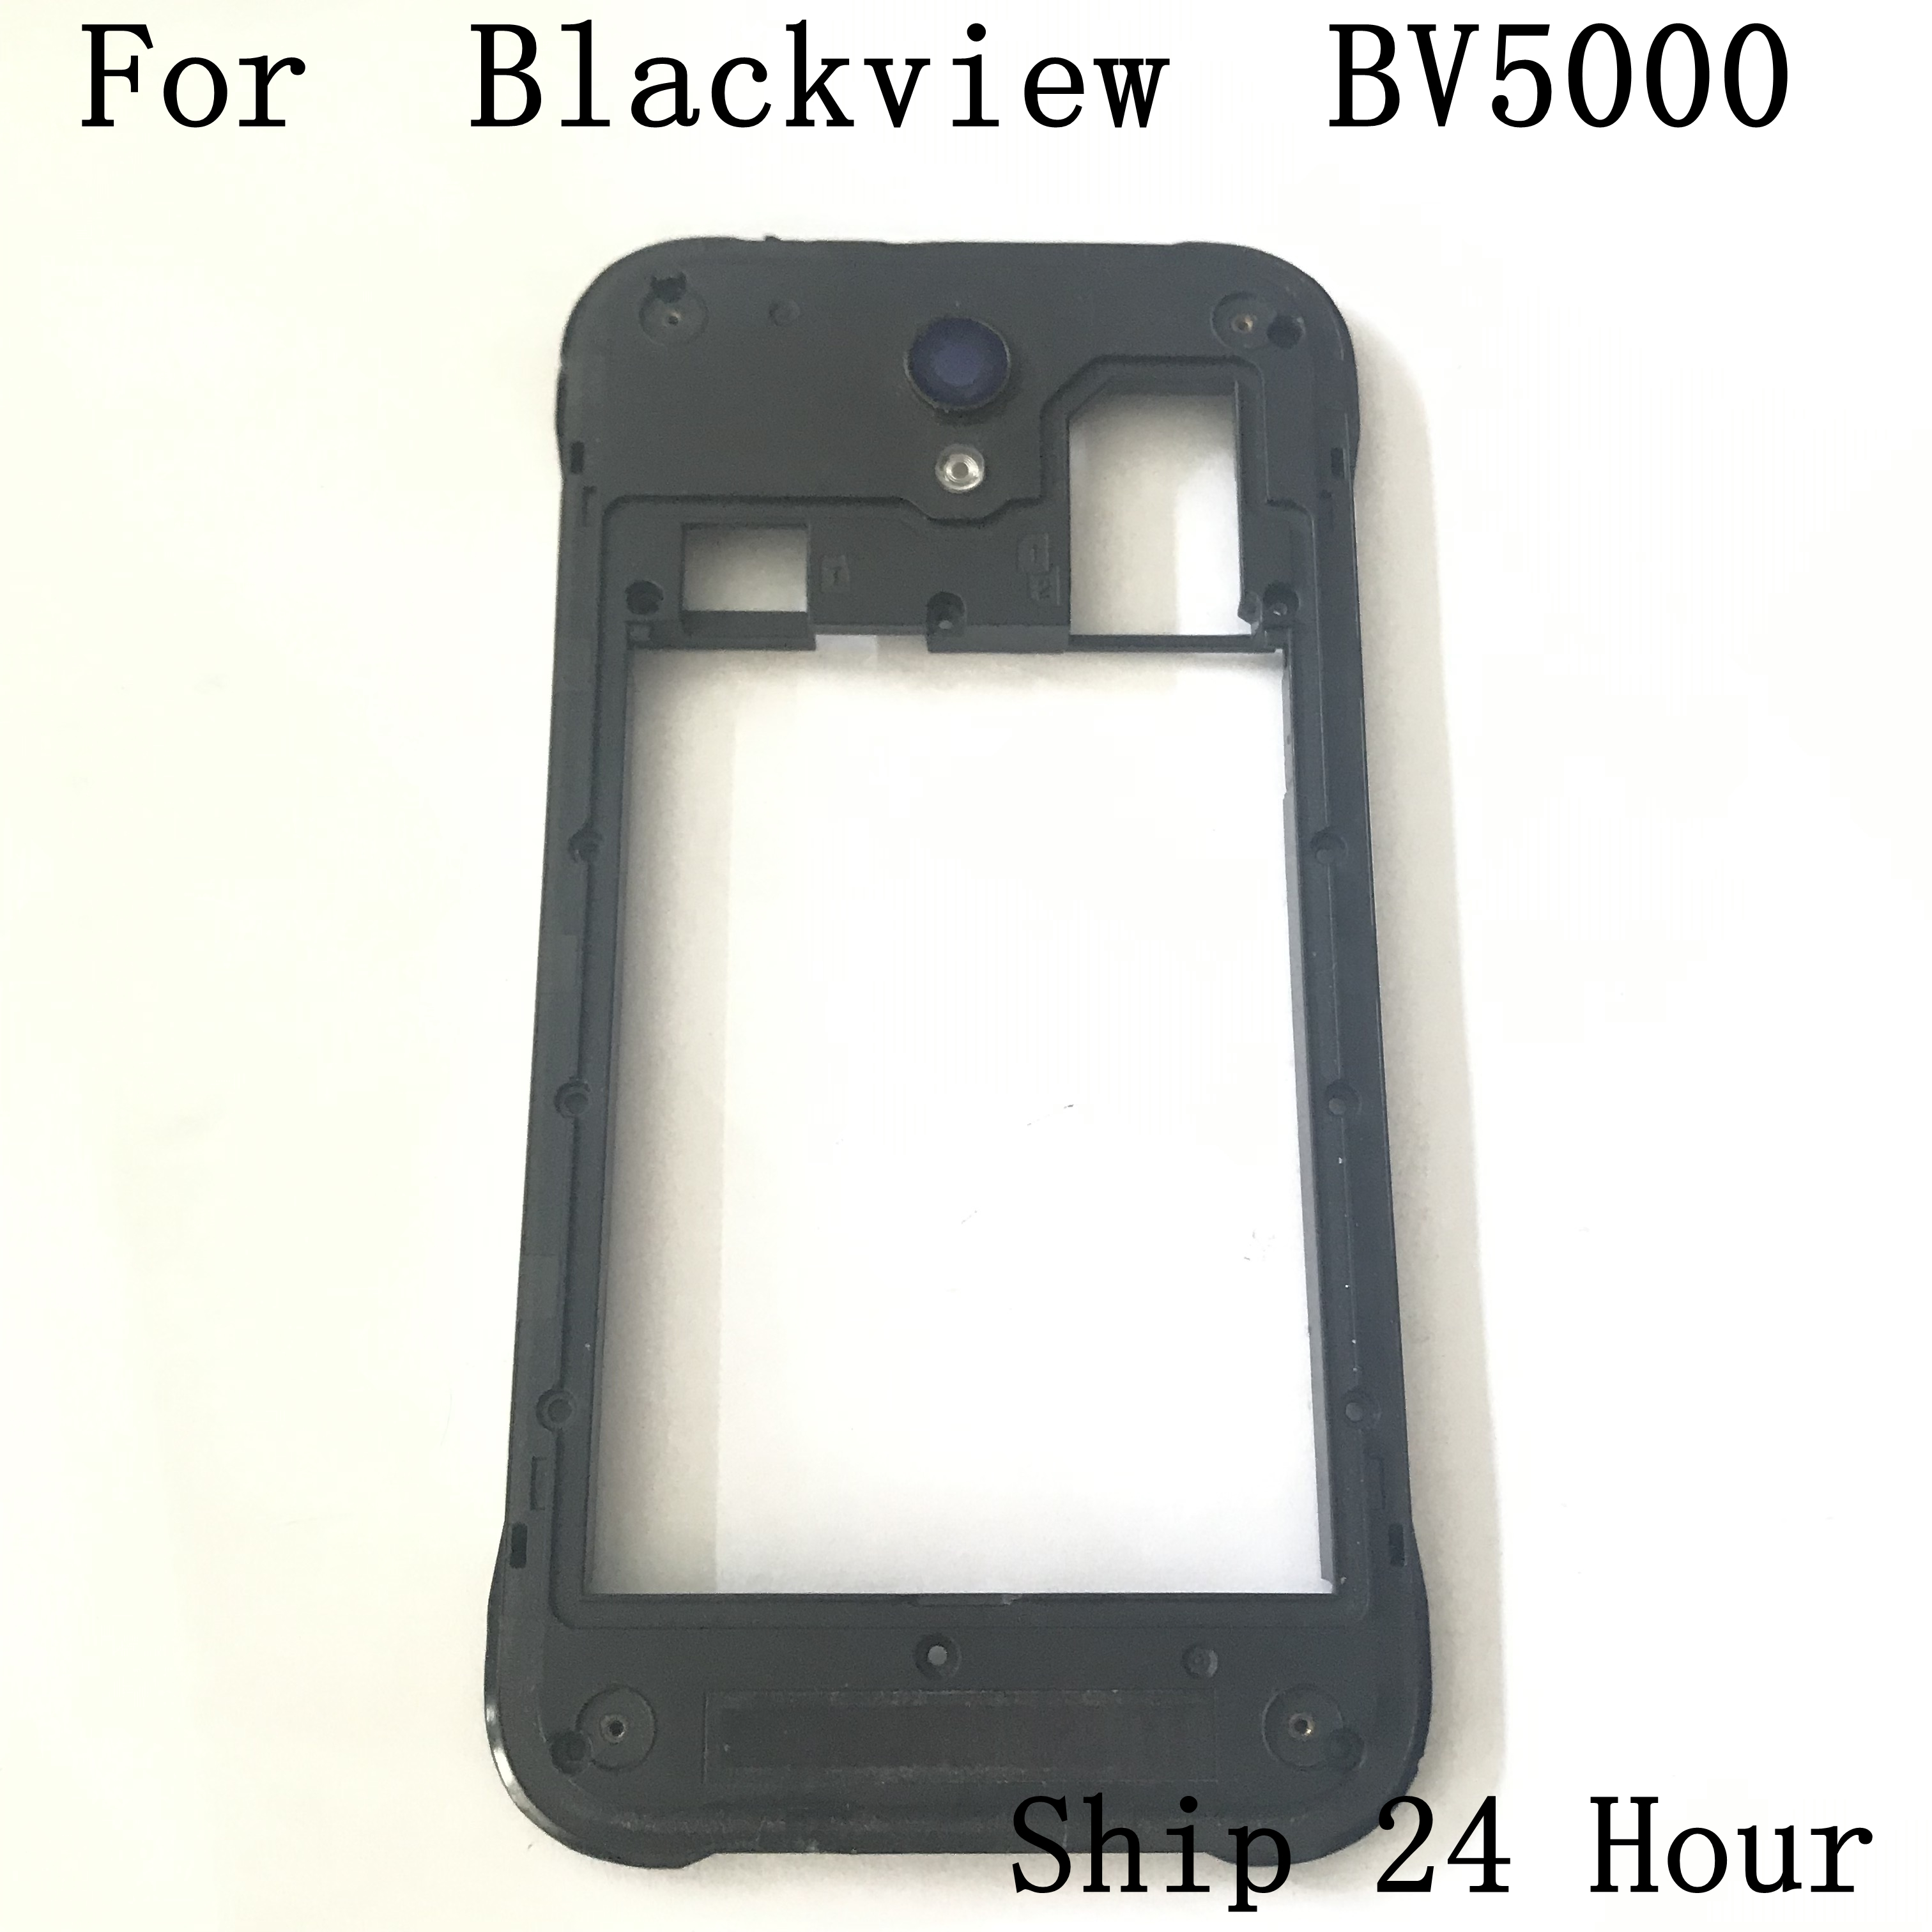 Original Blackview BV5000 Used Middle Frame Shell Case+Volume Up / Down Button+Power Key Button For Blackview BV5000